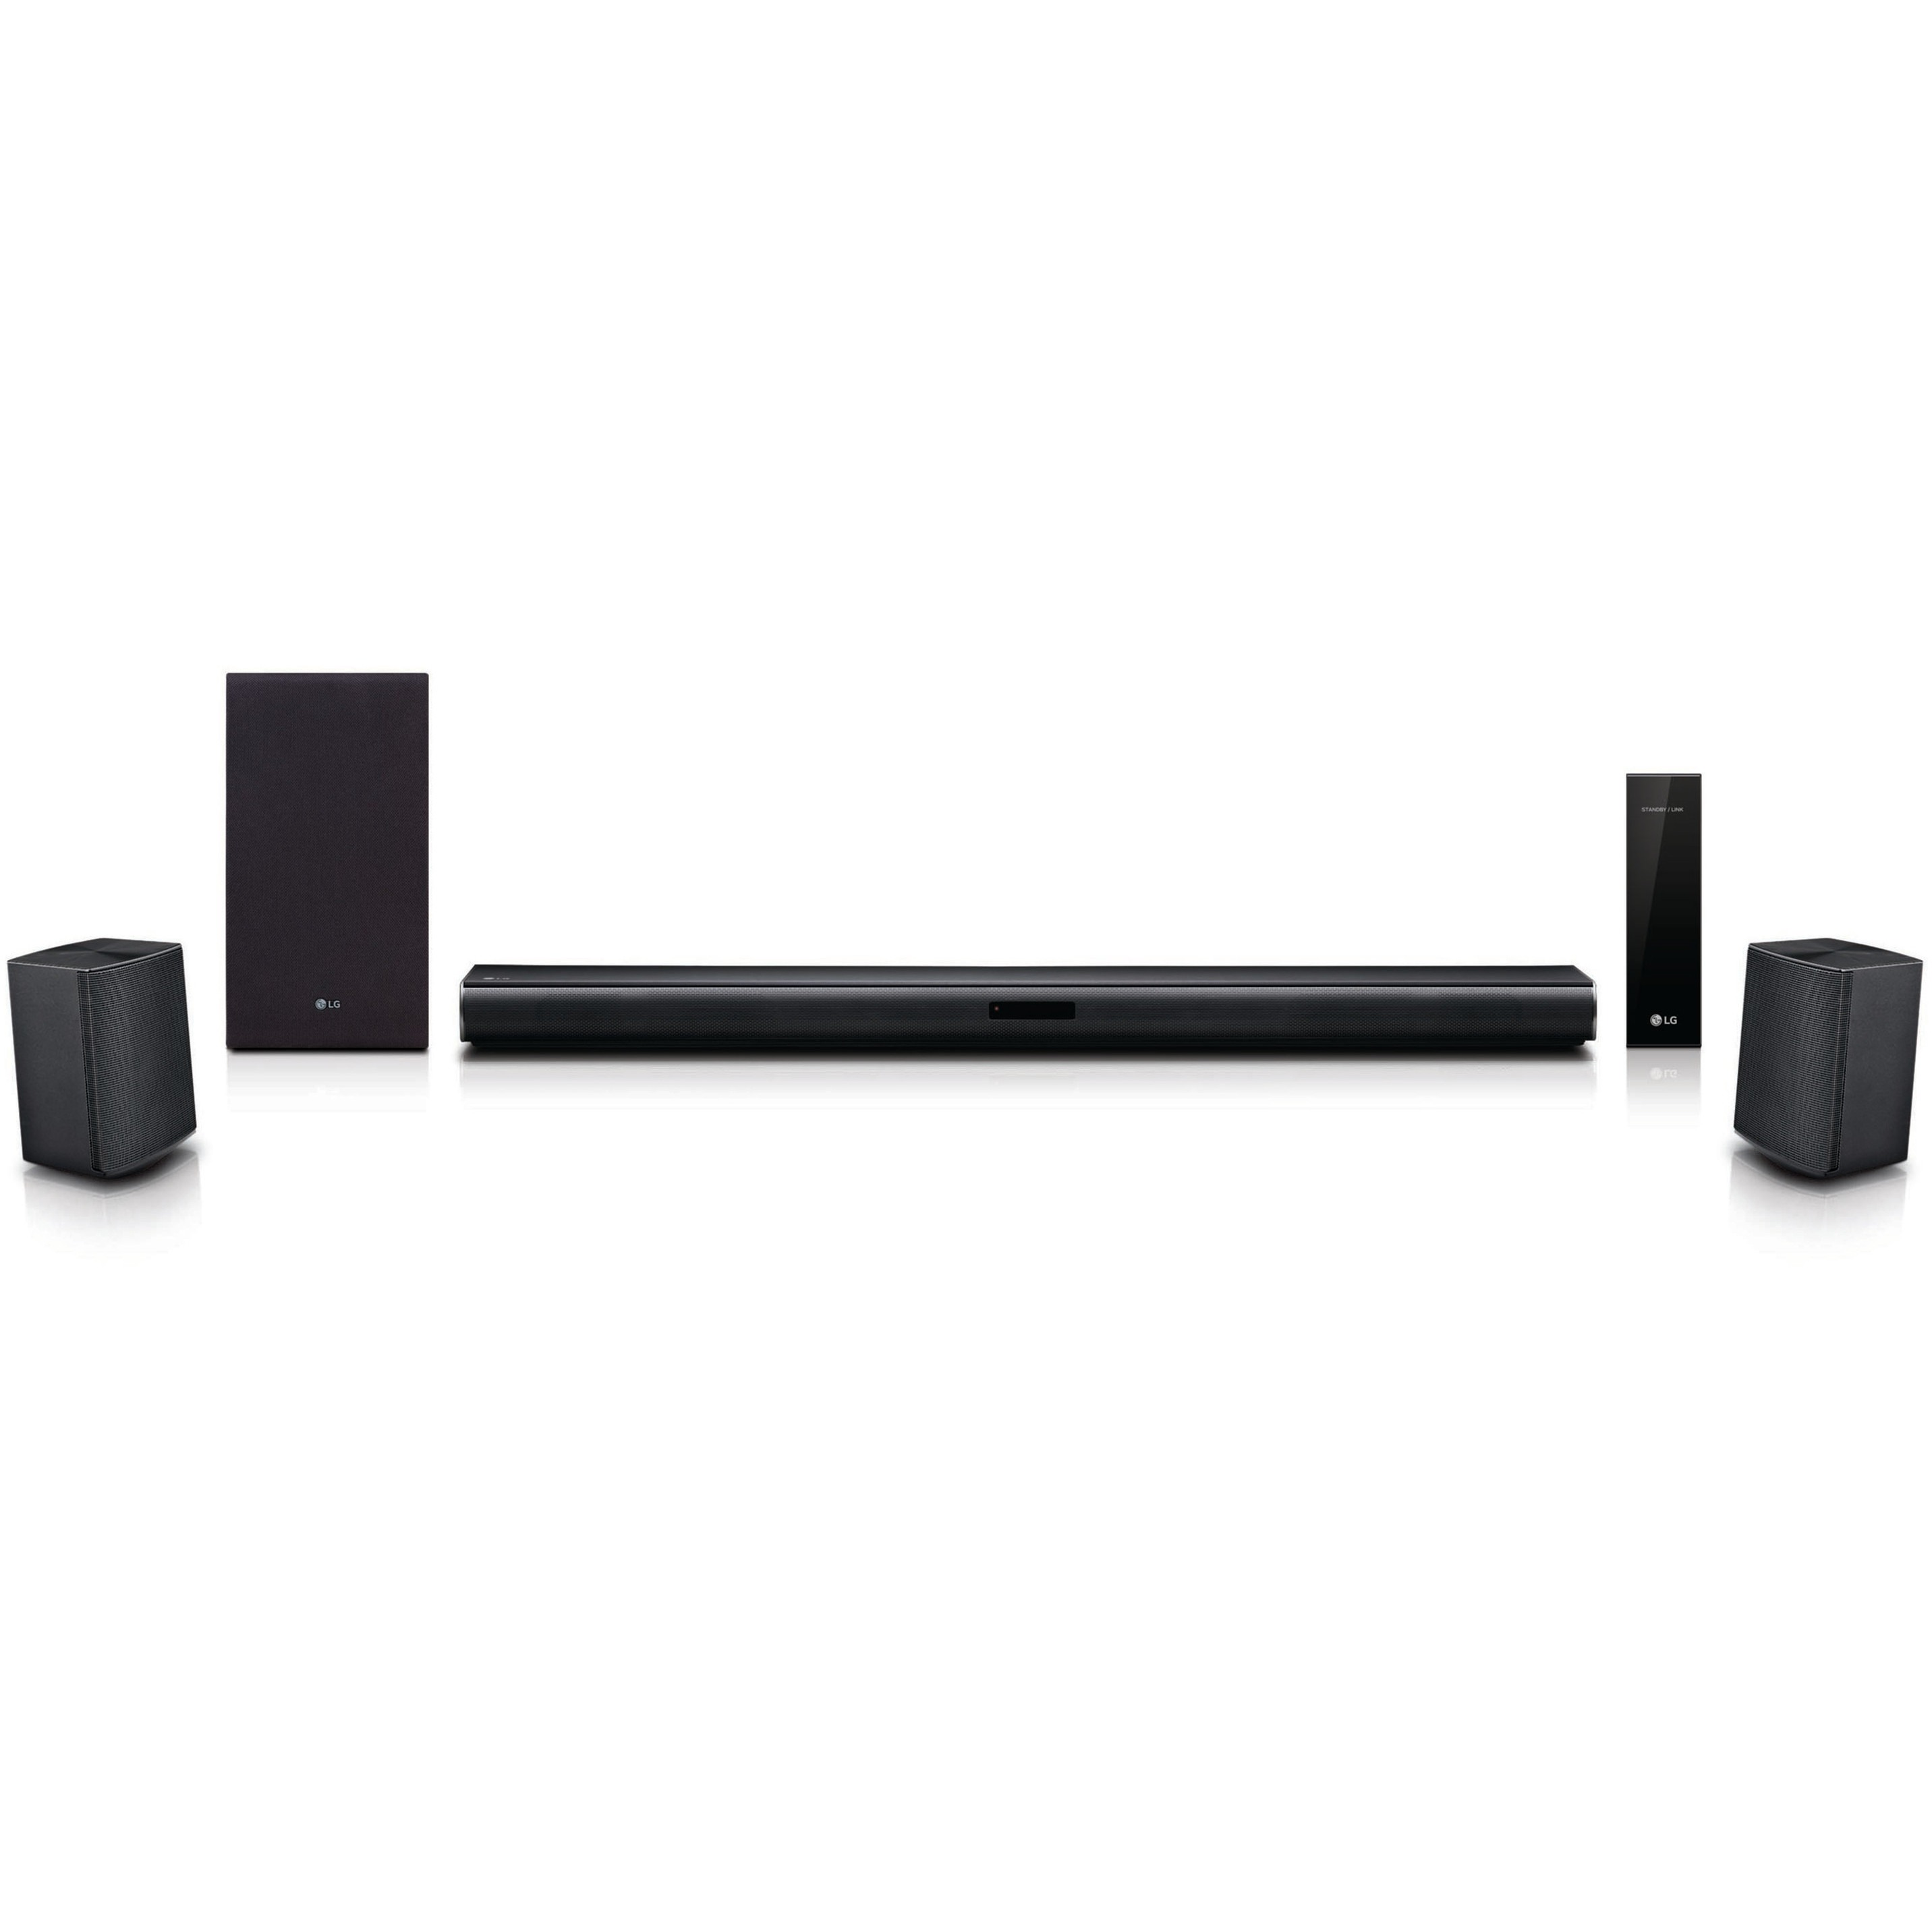 LG SJ4R 4.1 ch Sound Bar Surround System with Wireless Subwoofer ...